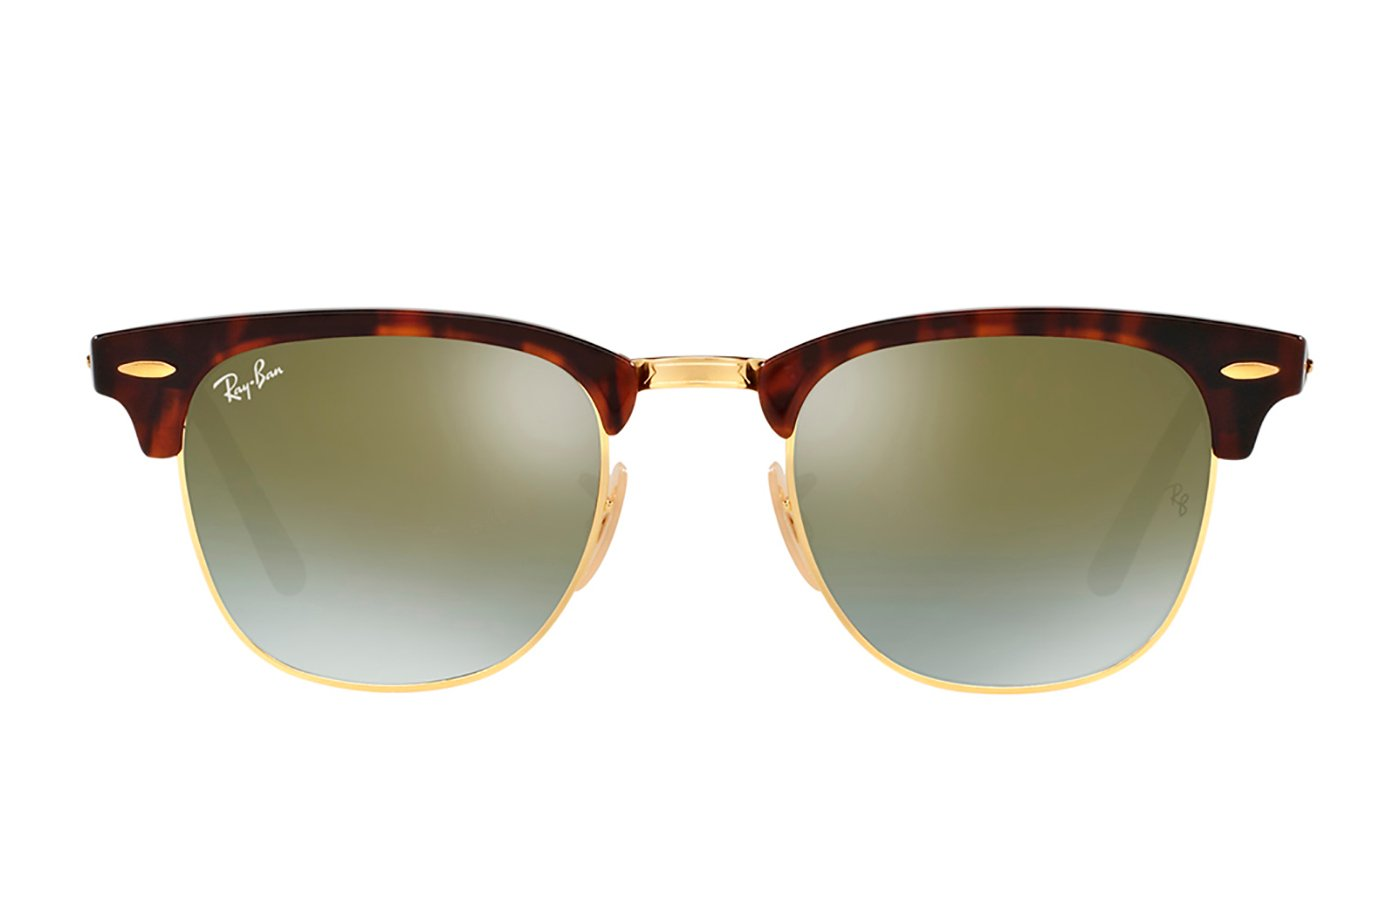 RAY-BAN CLUBMASTER SHINY RED/HAVANA 0RB3016 51 990/9J